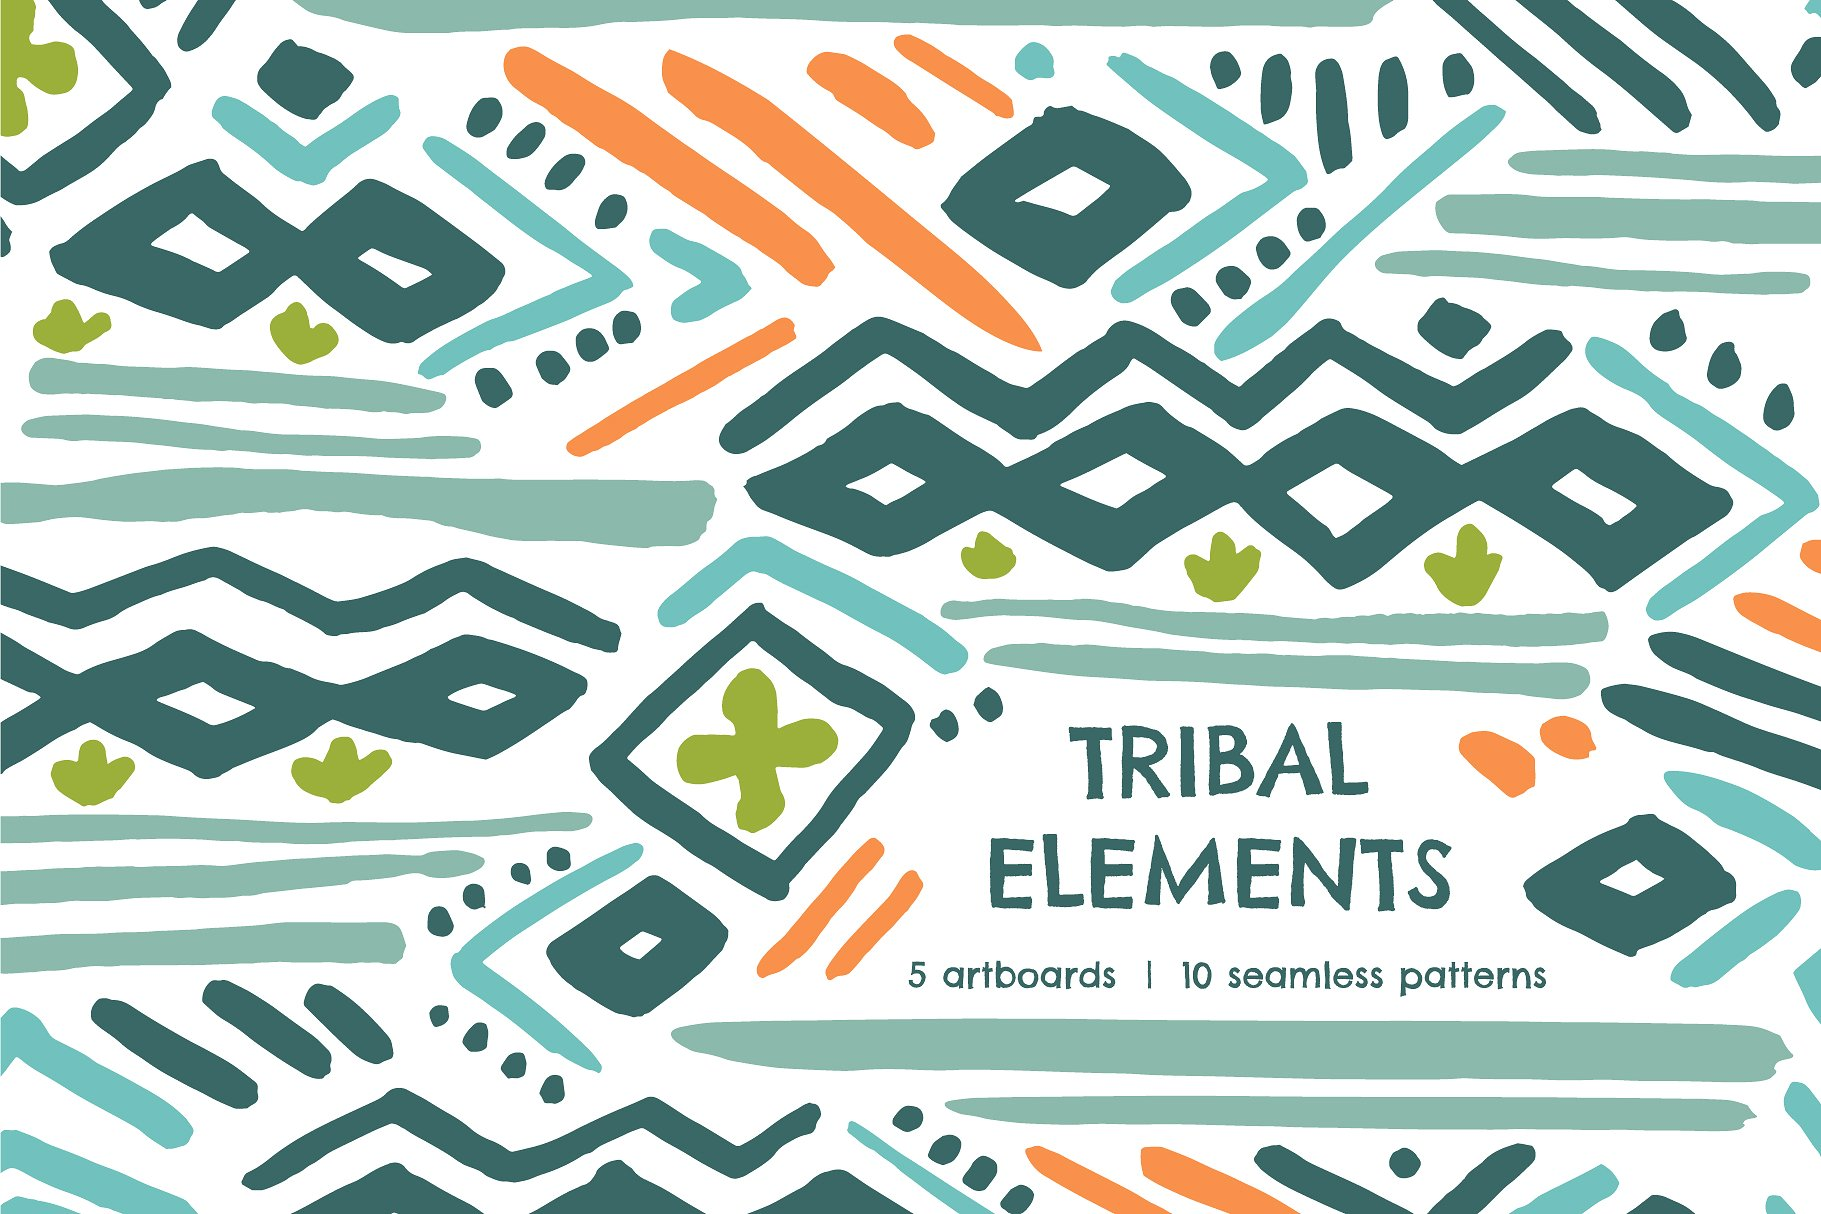 <span class='yzk_title_61865'>手绘部落元素无缝纹理 Tribal Element | Seamless Patterns</span>